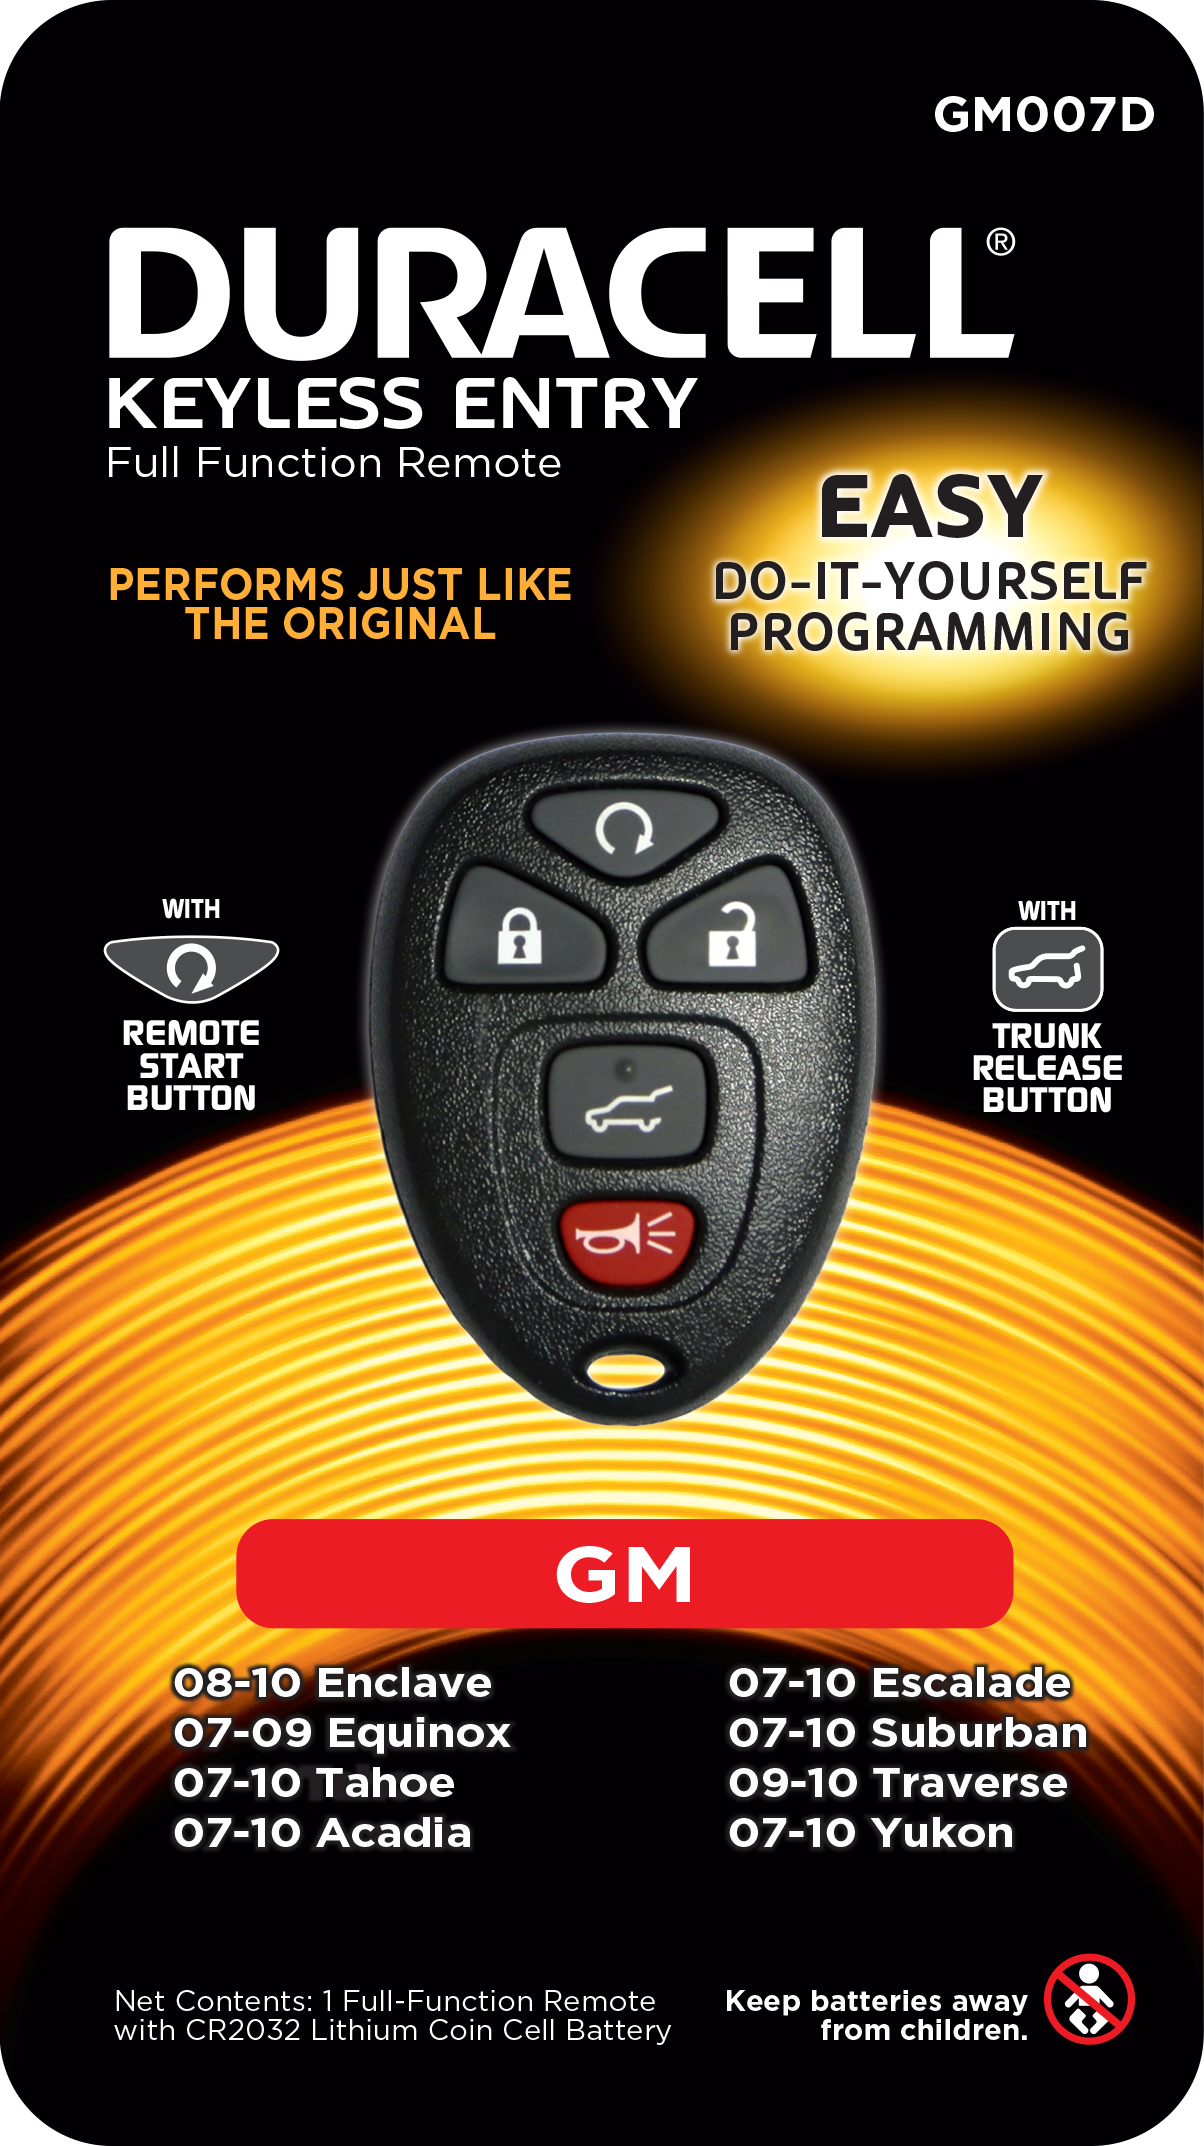 Duracell Remotes GM007D